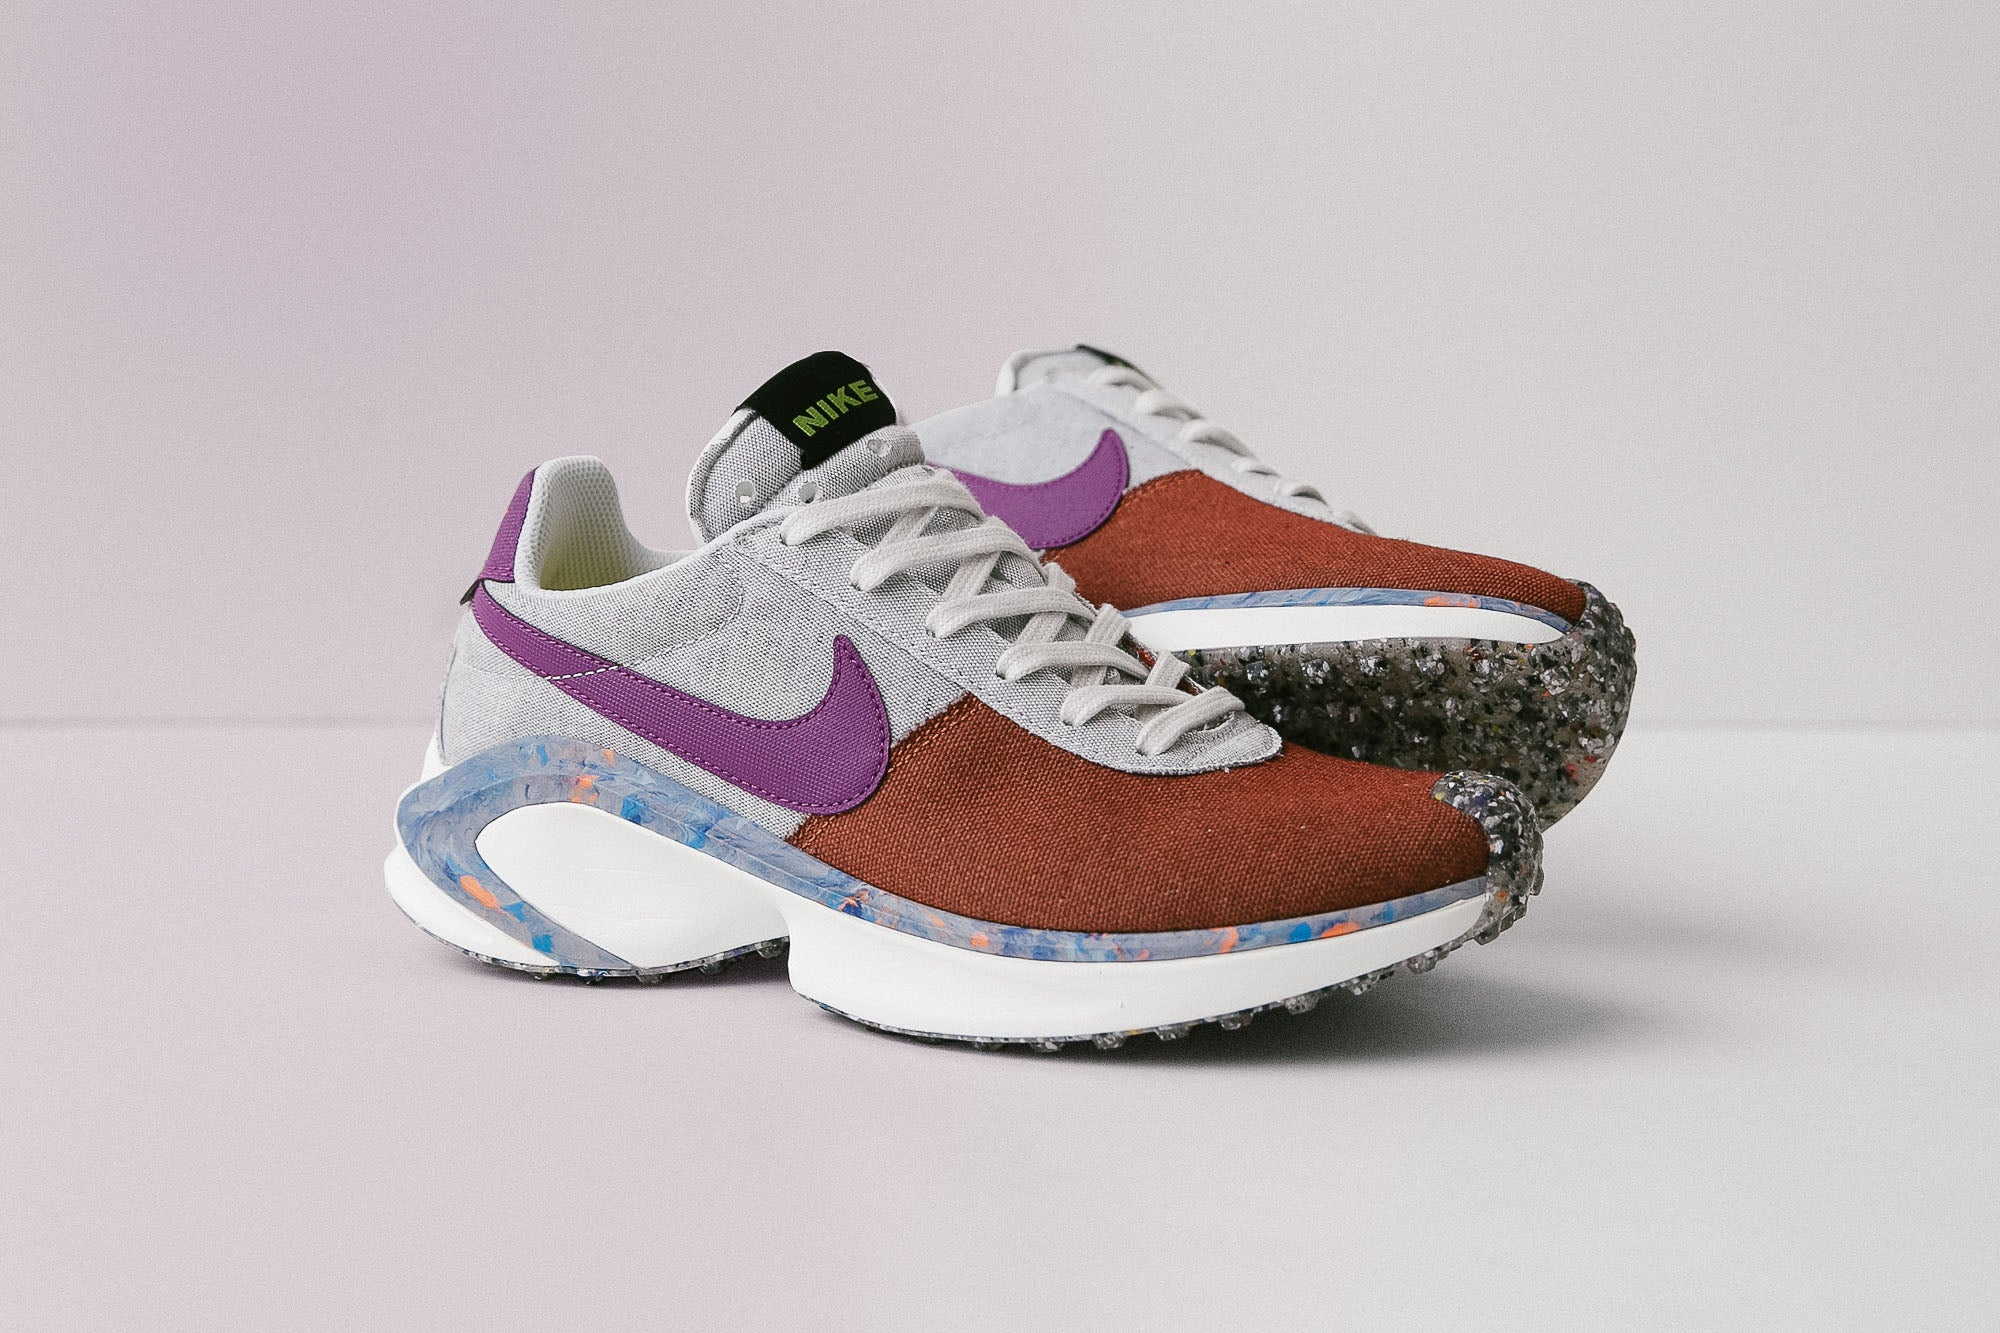 Nike Sportswear: The Story of the N.354 Collection | Always in Colour